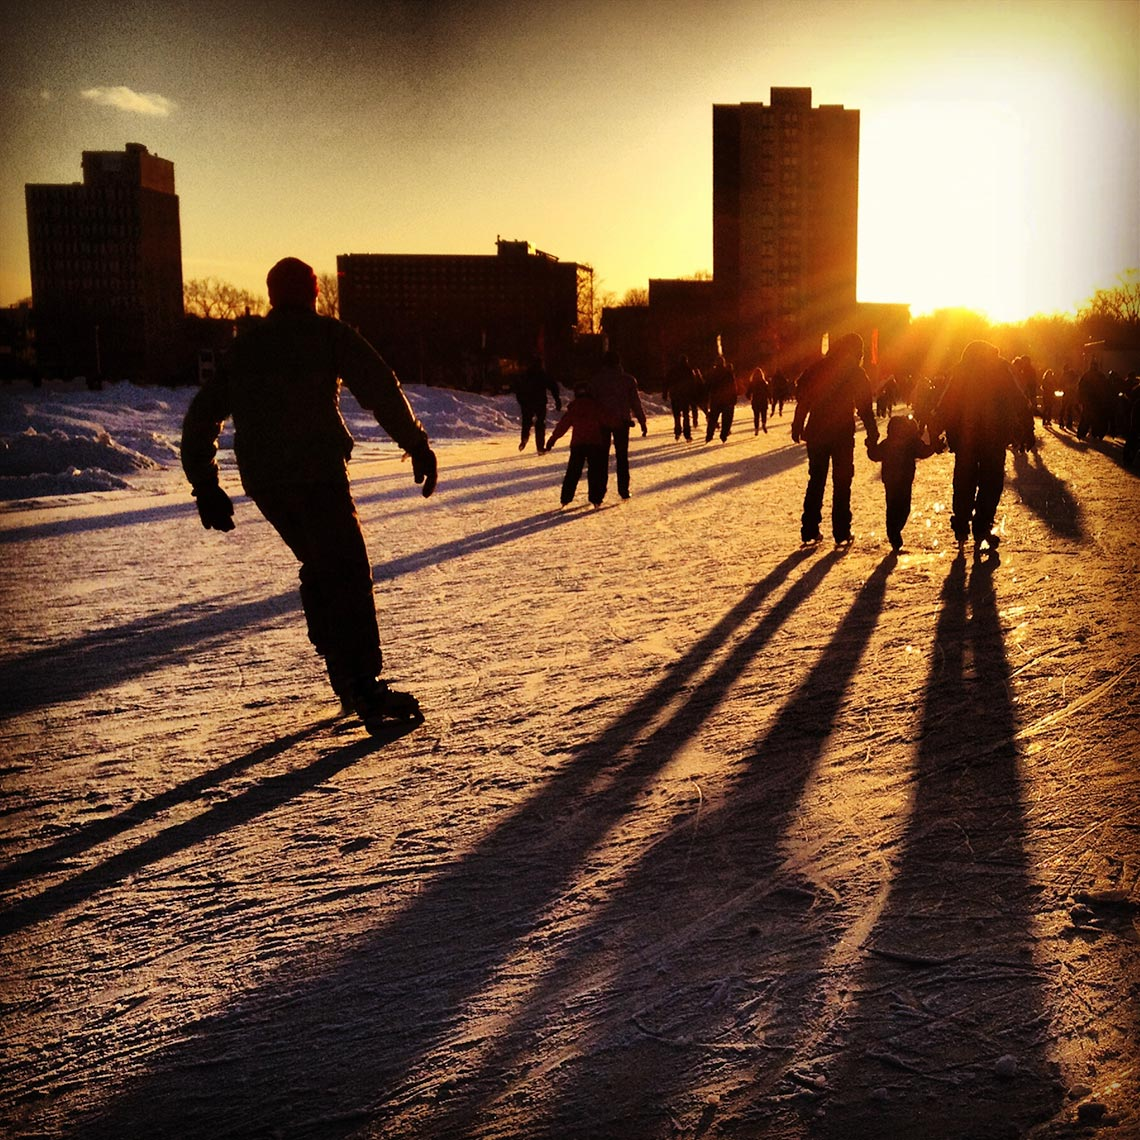 Skating on the Oval